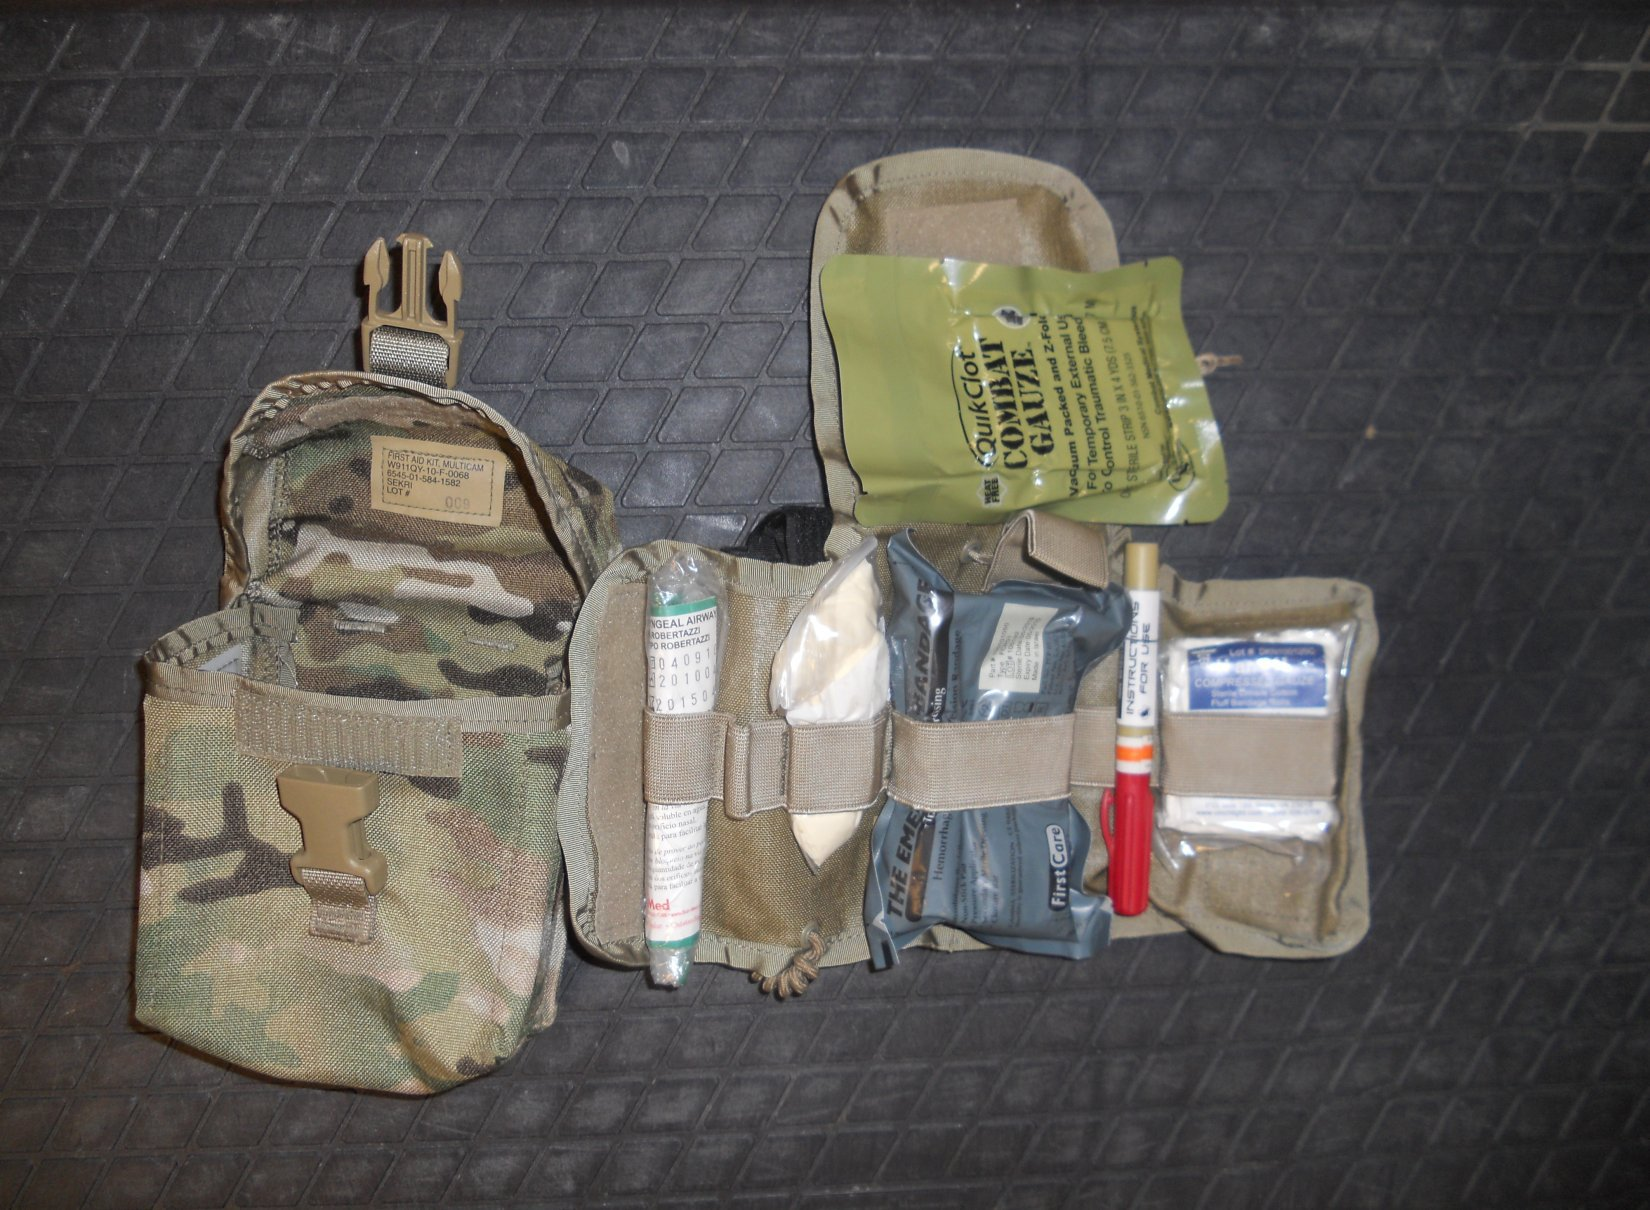 IFAK Individual First Aid Kit Tactical Medicine Combat Medicine Jeff Gurwitch Pic D Individual First Aid Kit (IFAK): Tactical Medicine/Combat Medicine Kit for Military Infantry, Special Operations Forces (SOF) and Civilian Tactical Shooters!